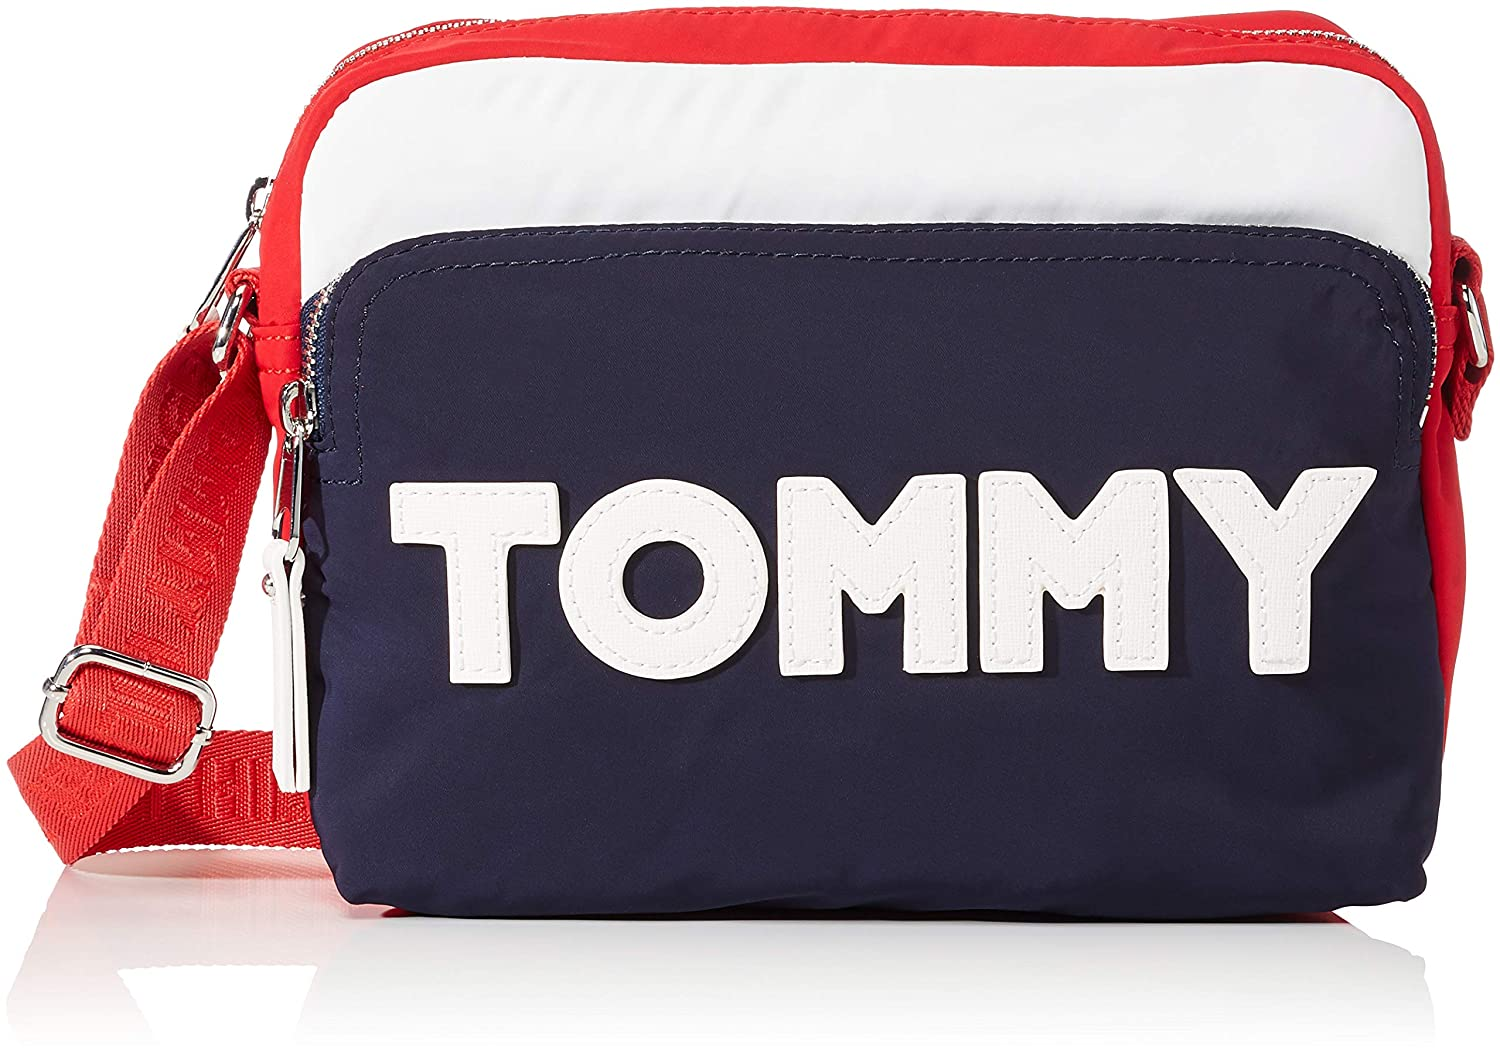 Tommy Hilfiger Tommy Nylon Crossover, Sacs bandoulière Sacs bandoulière femme Bleu (Tommy Navy) 4.5x23.5x18 cm (B x H x T) AW0AW04951